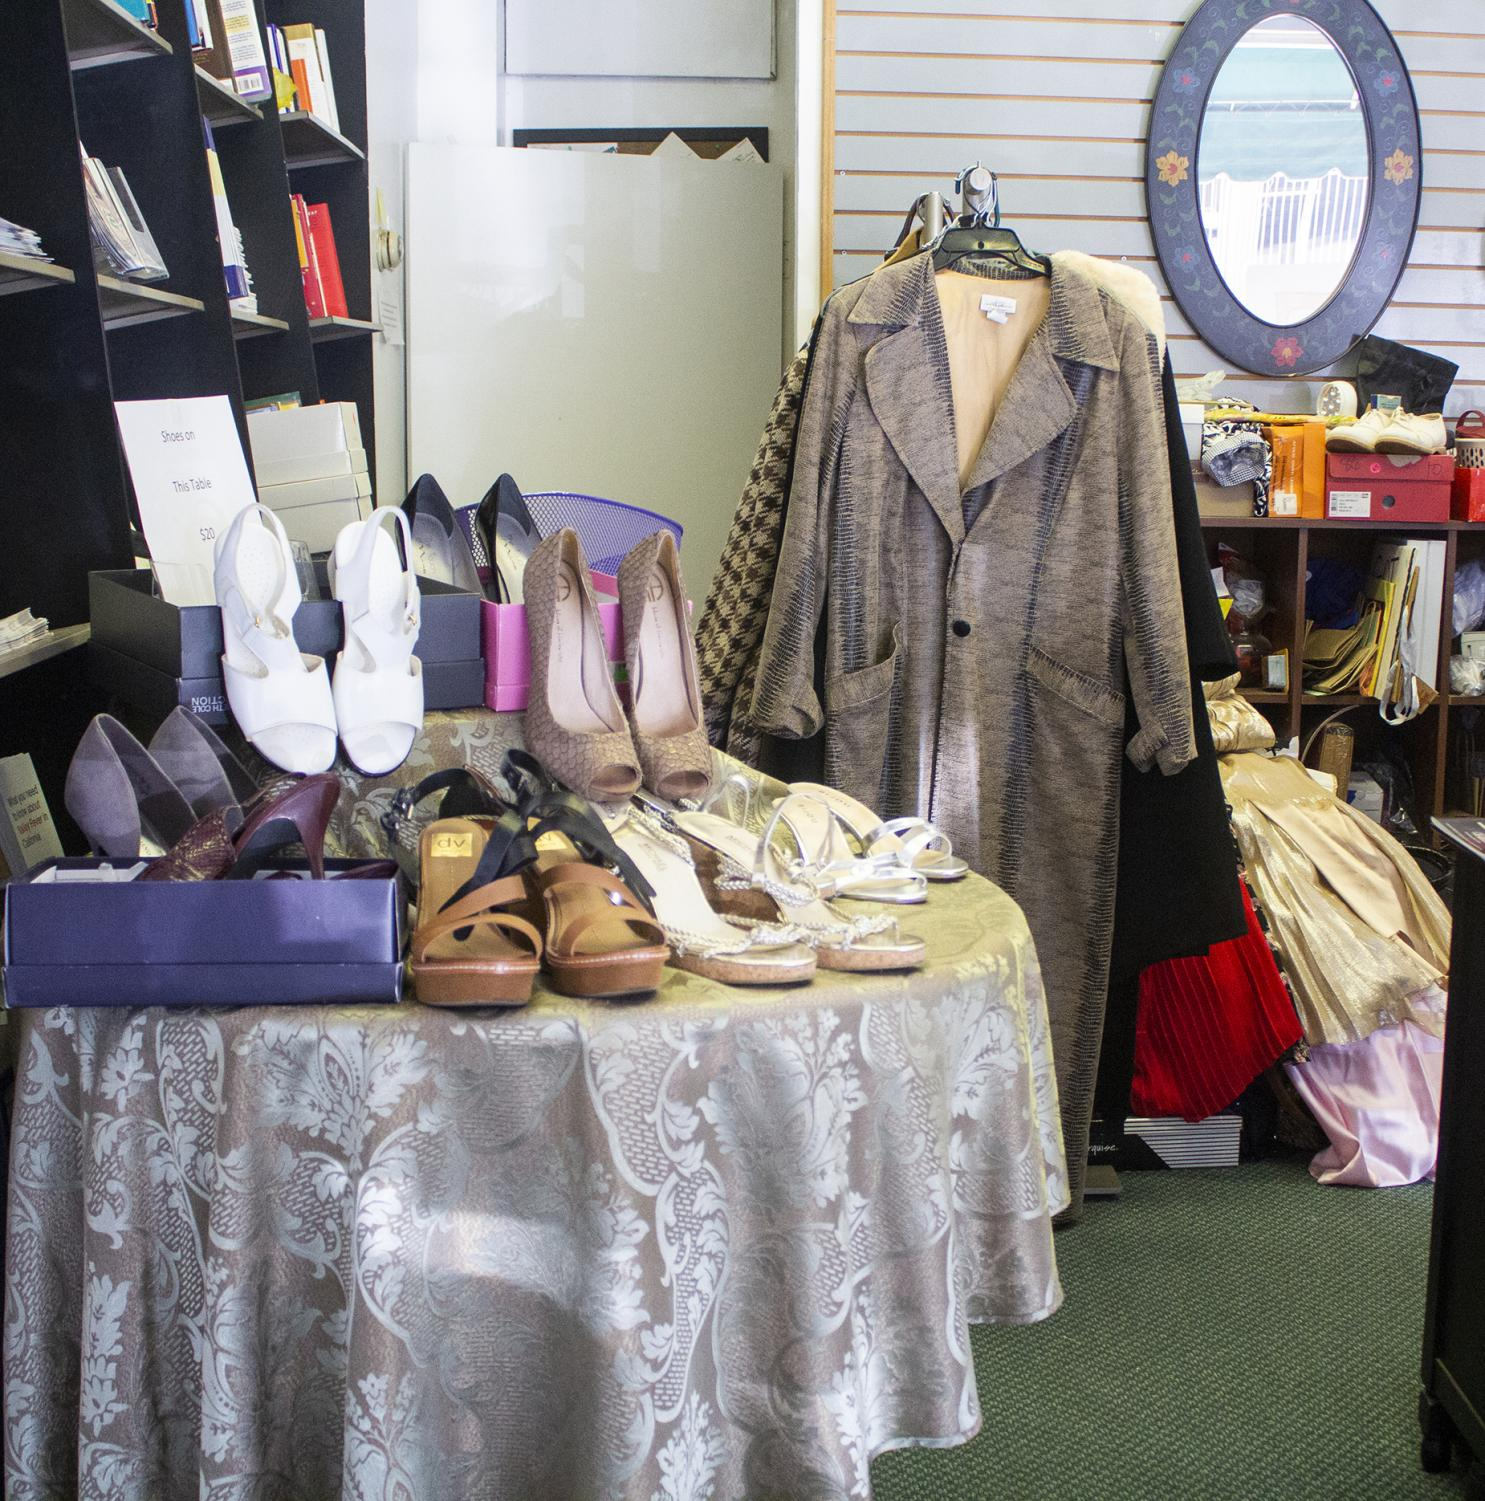 A shoe display for some of the items on sale at Dress for Success.